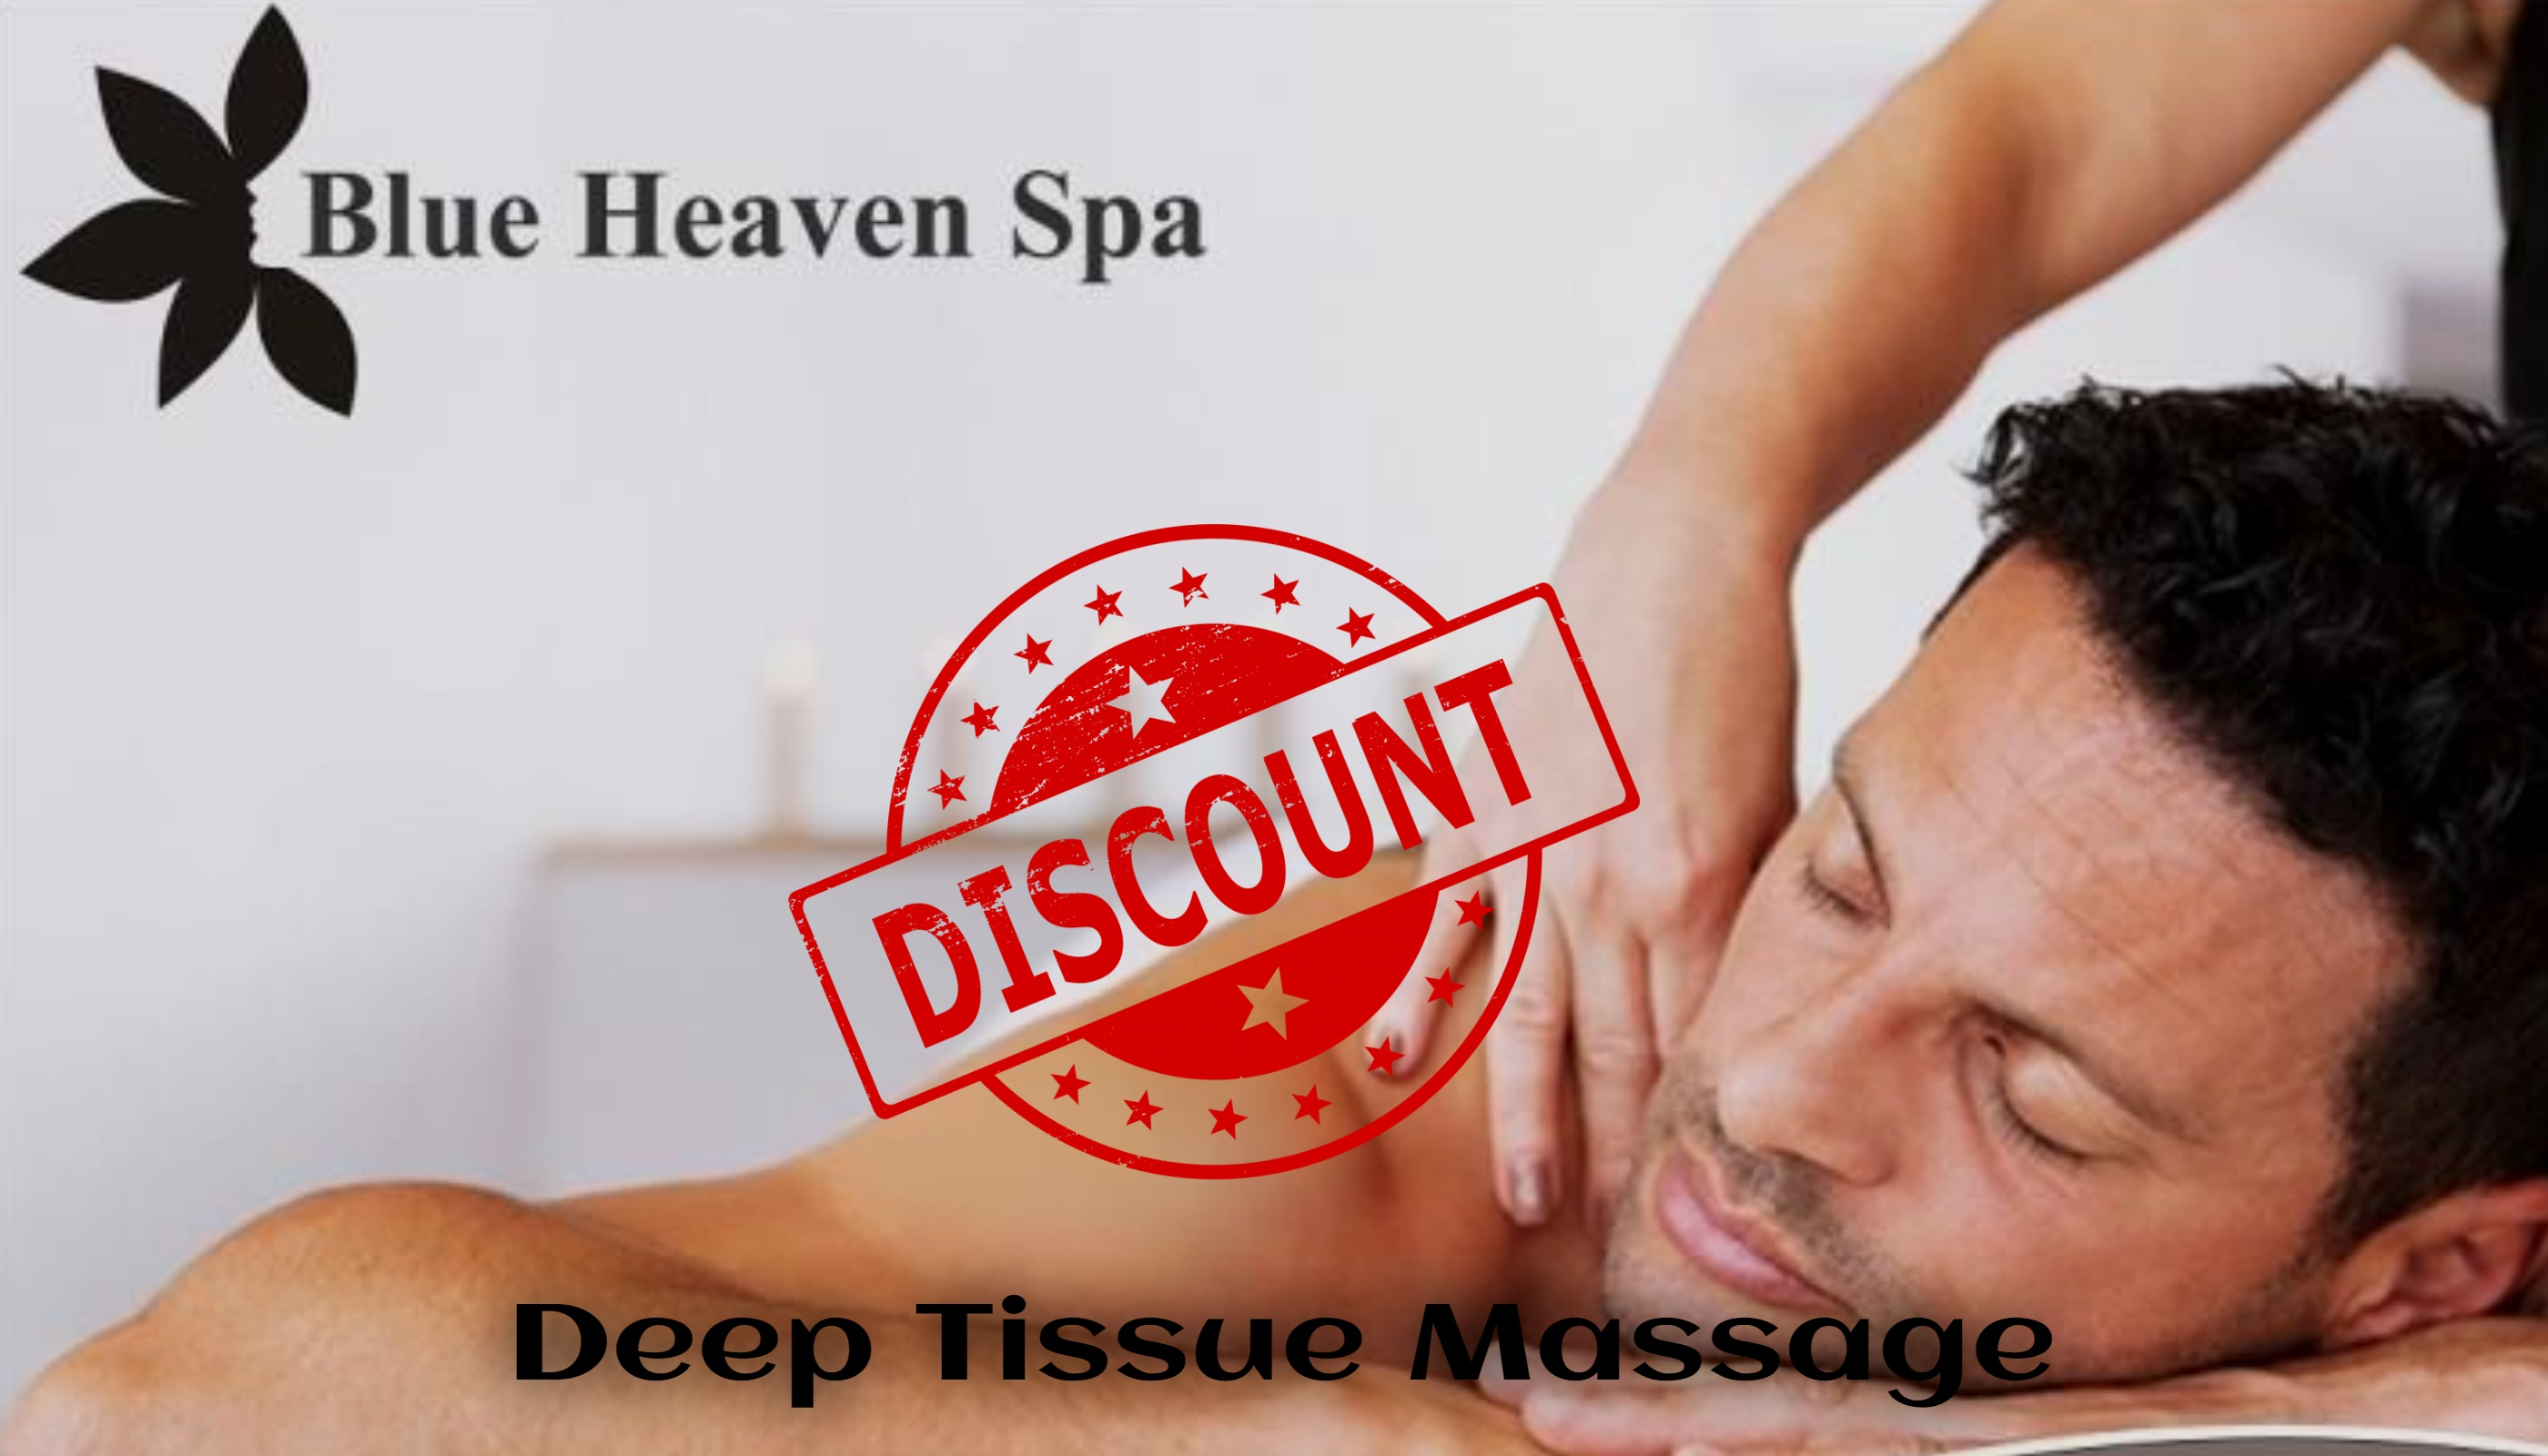 Deep Tissue Massage (Full Body Massage)